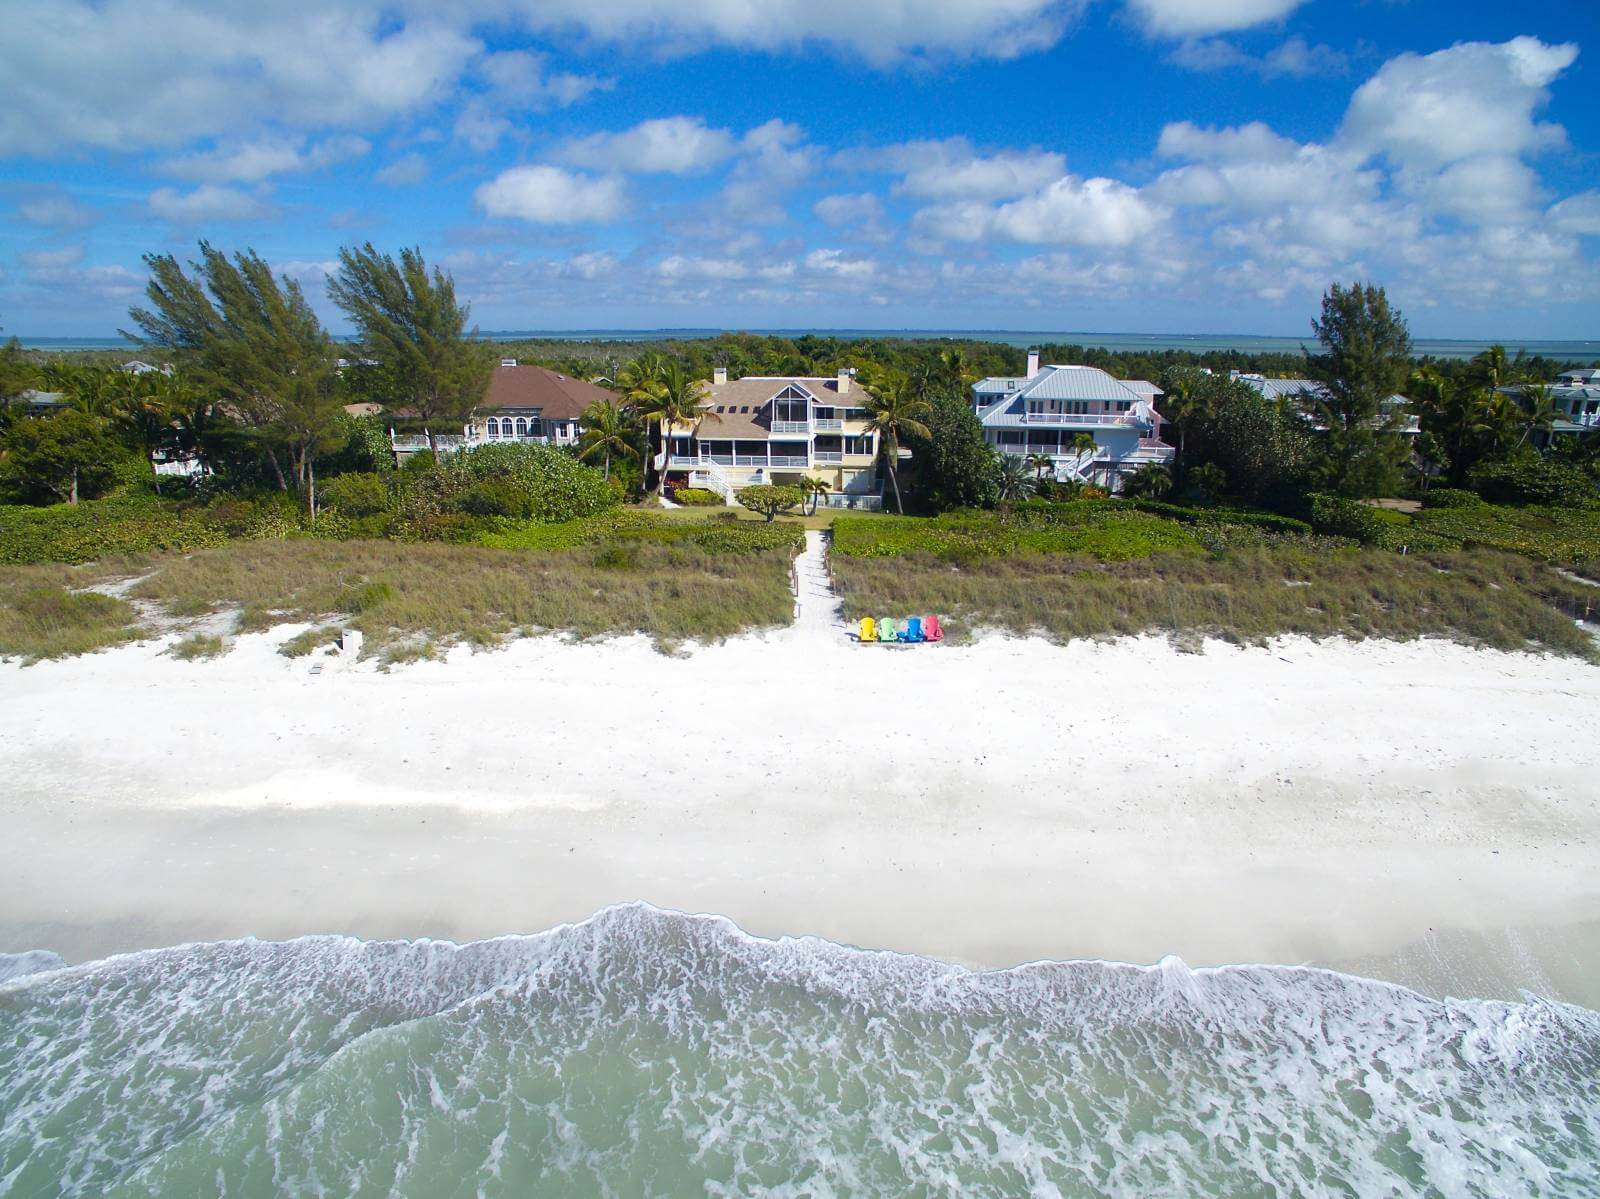 Royal Shell Vacations in Naples offers invaluable local insight, whether you need to rent, buy, or sell a vacation property in Southwest Florida. #NaplesFlorida #vacationhomes #beachfronthomes #vacation